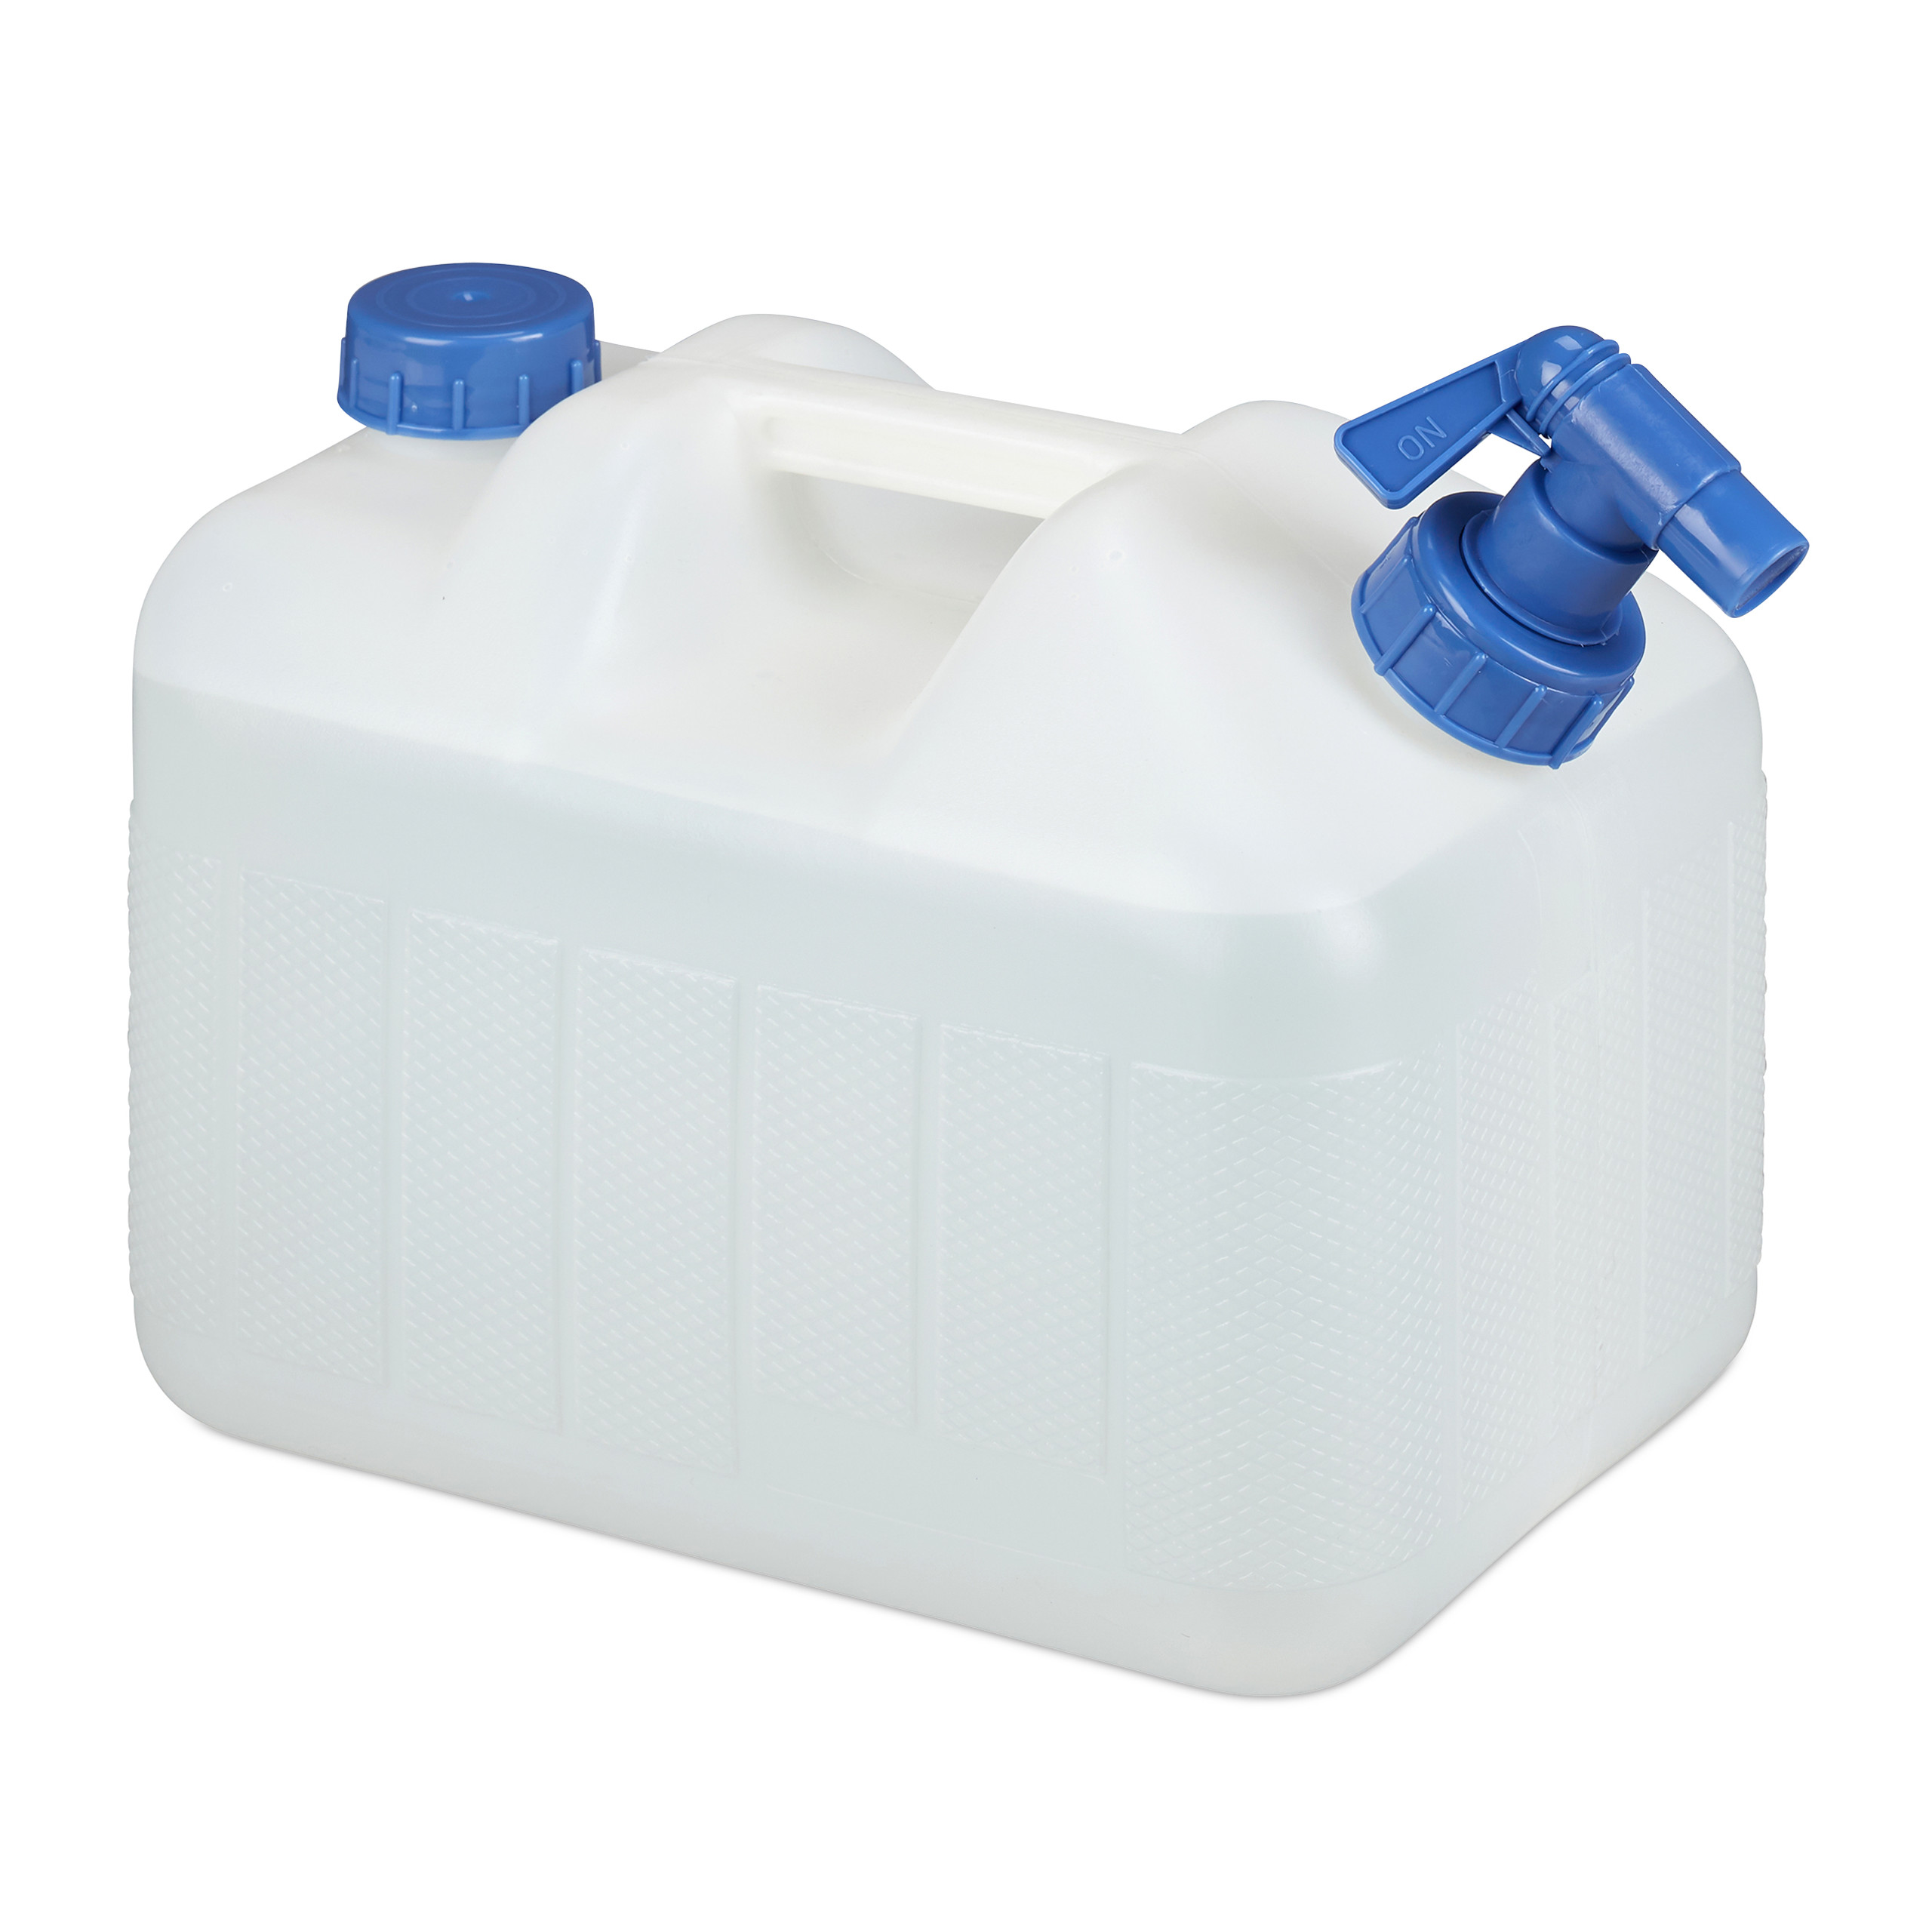 thumbnail 10 - Water Canister, Spigot, Jerrycan, Water Jug, Plastic Container